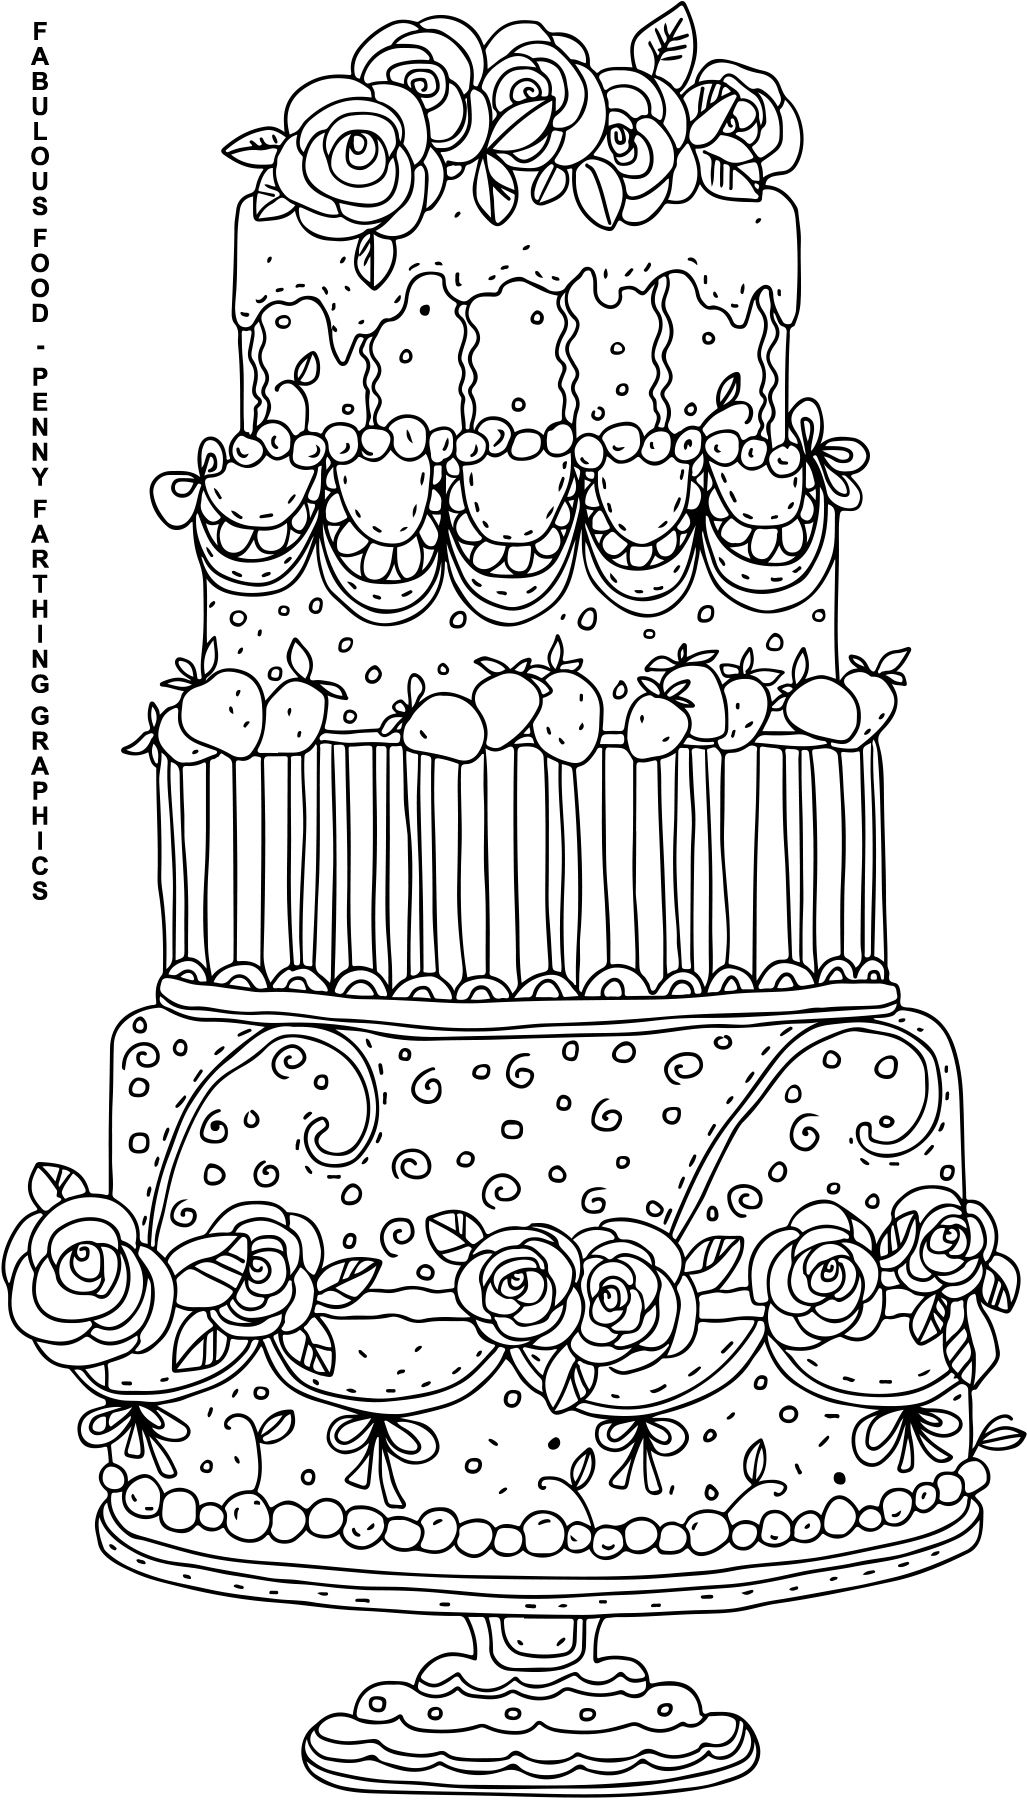 Cake From Fabulous Food Food Coloring Pages Wedding Coloring